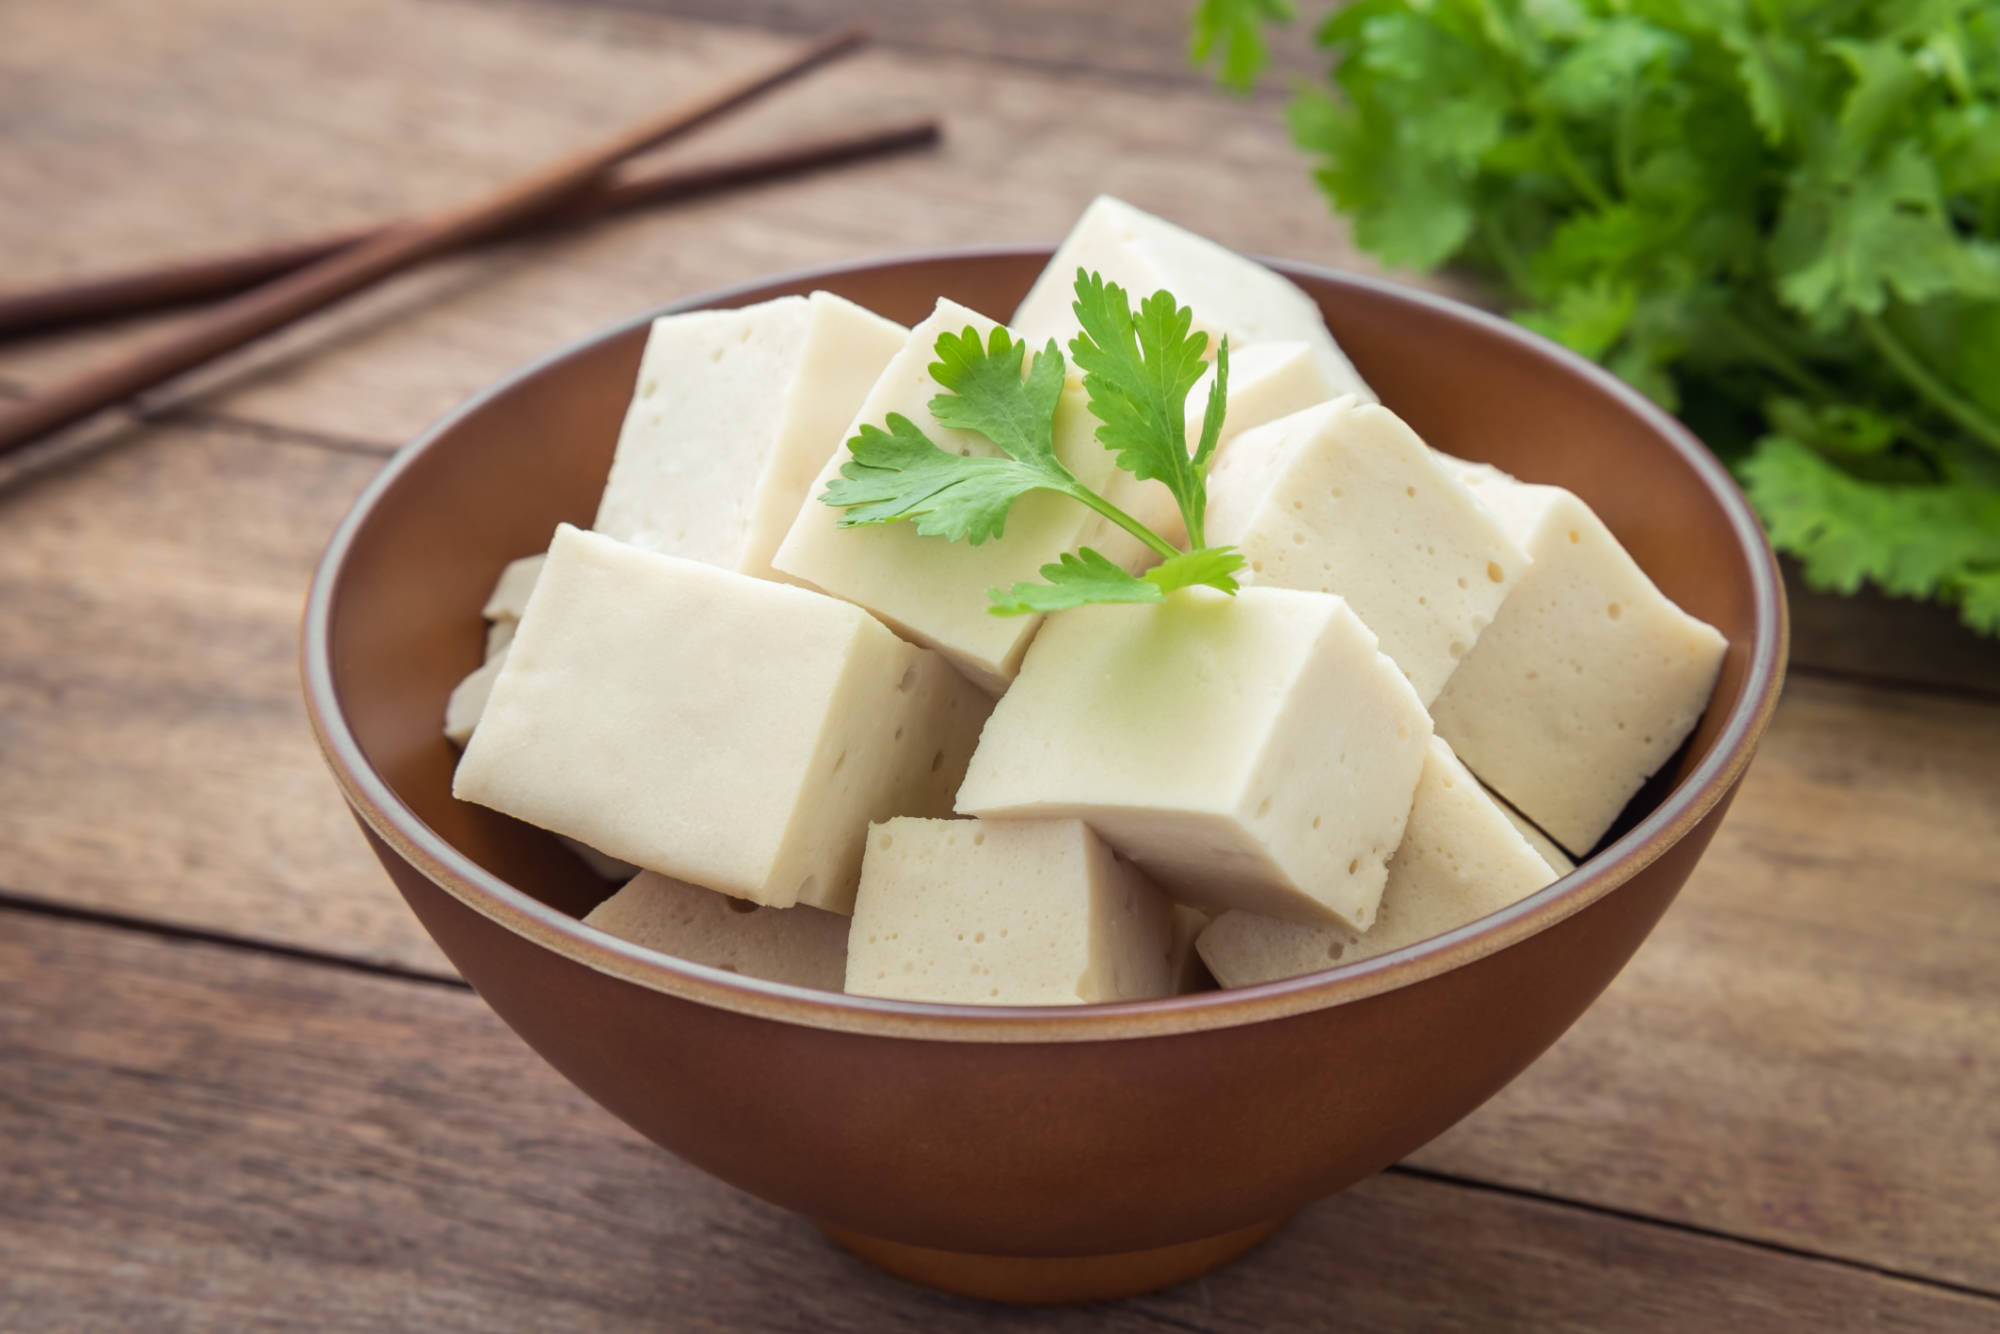 the history and health benefits of tofu the wonder food Tofu, also known as soybean curd, is a soft cheese-like food that comes from coagulated protein in soymilk highly versatile, tofu is great for many recipes.